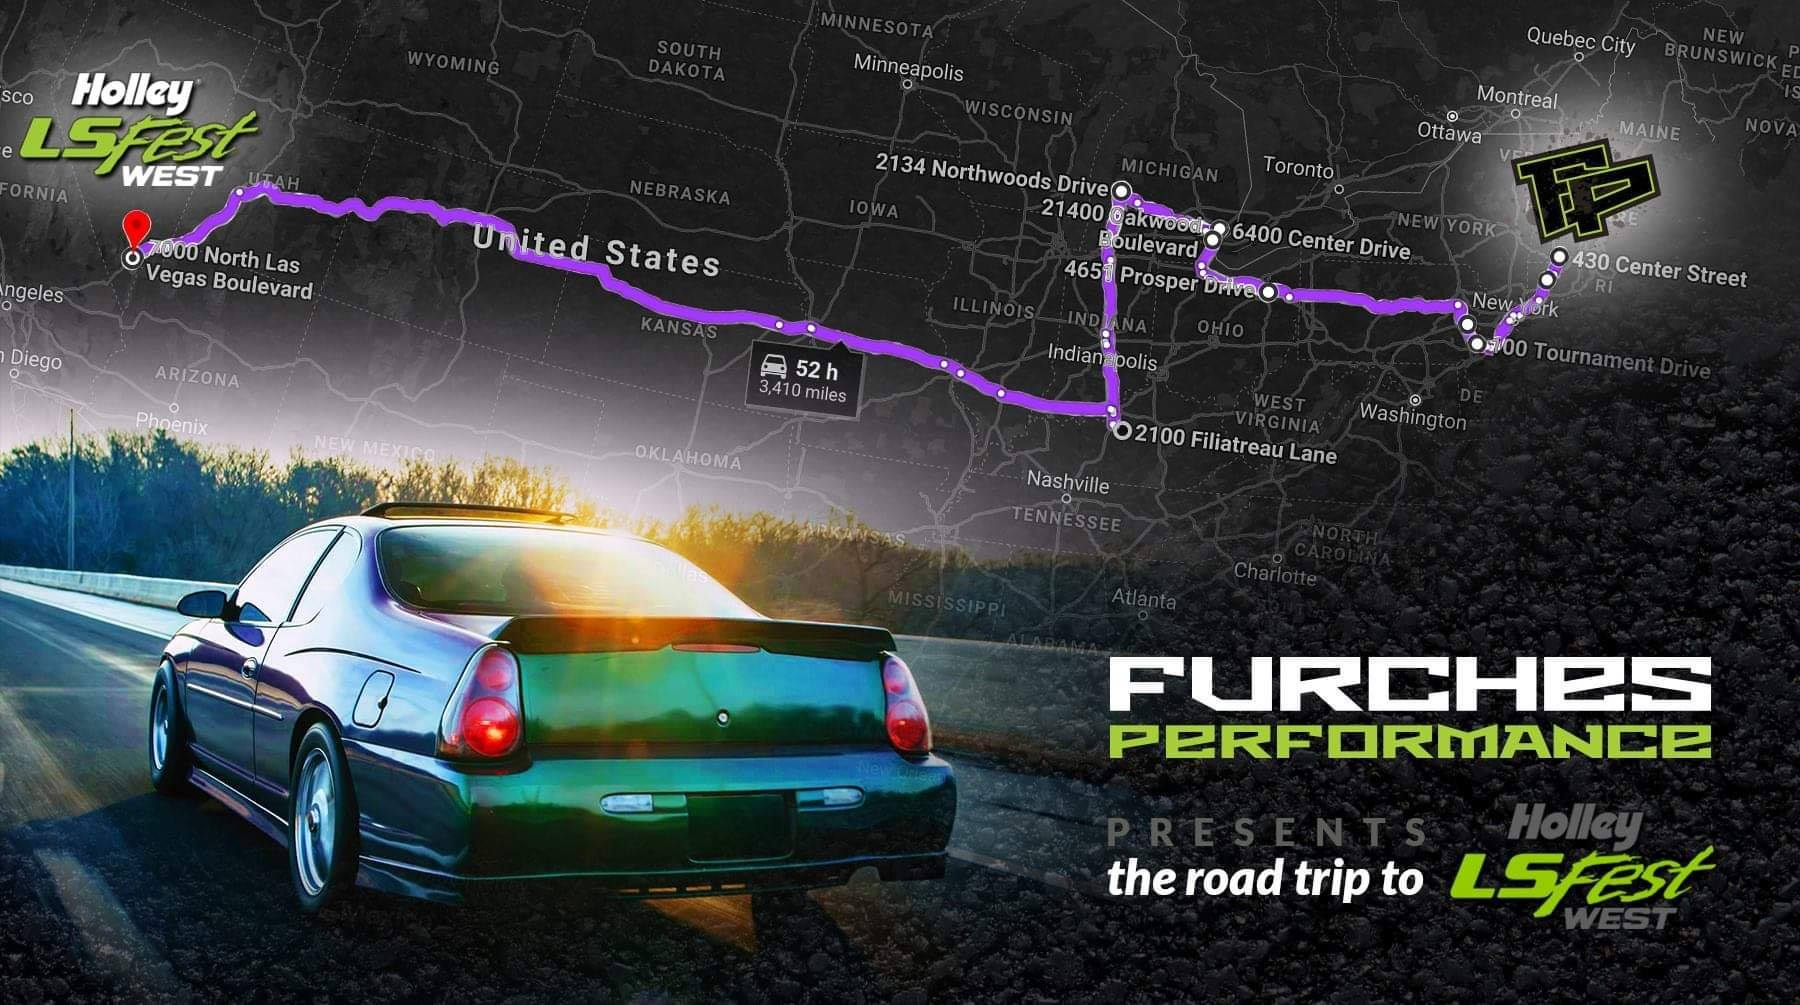 Roadtrip! Crossing the country with 800 HP to Holley LSFest West!